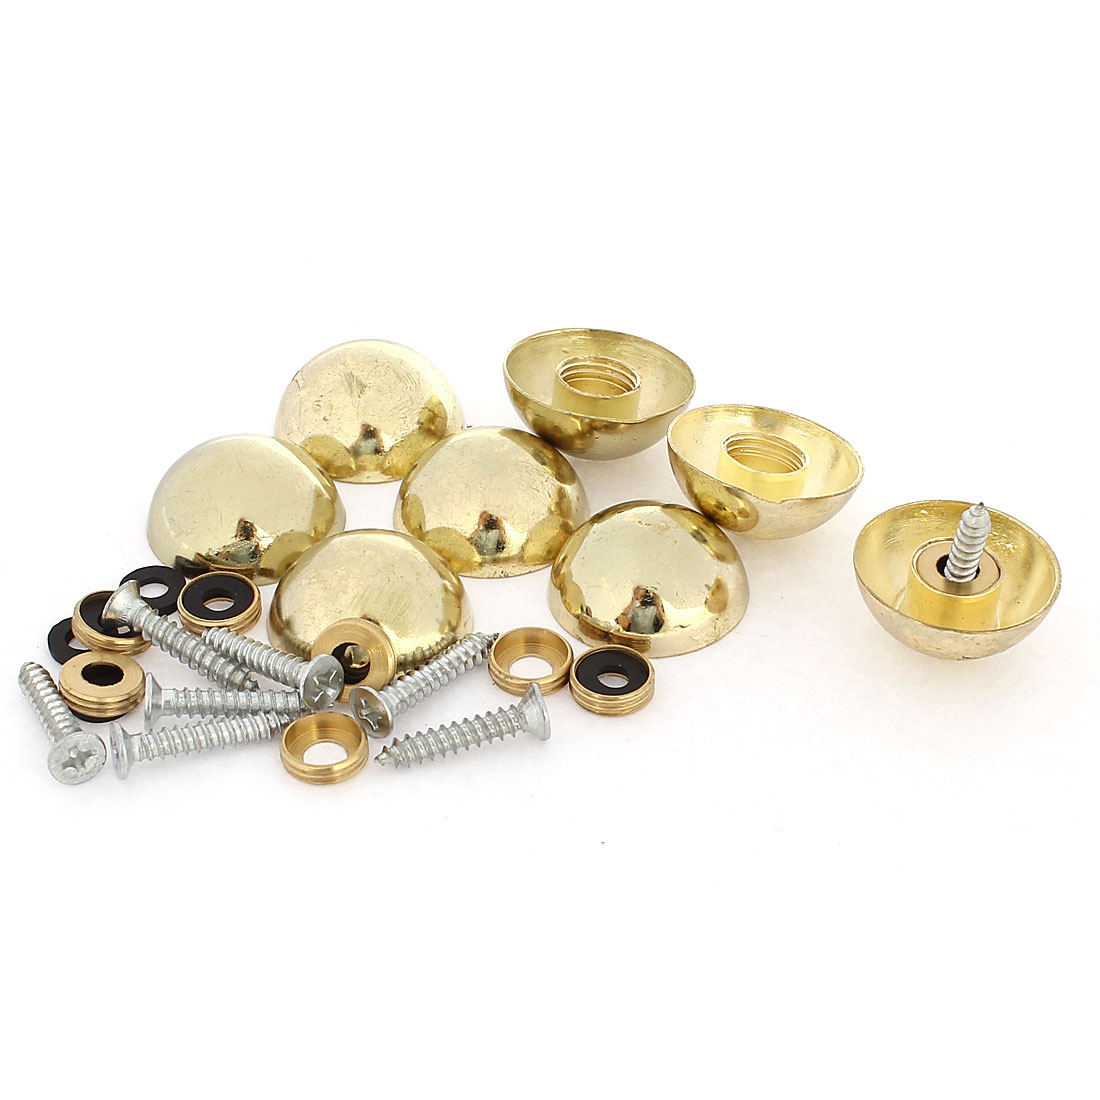 8 Pcs 23mm Dia 10mm Height Zinc Alloy Mirror Screw Cap Nail Fittings Gold Tone